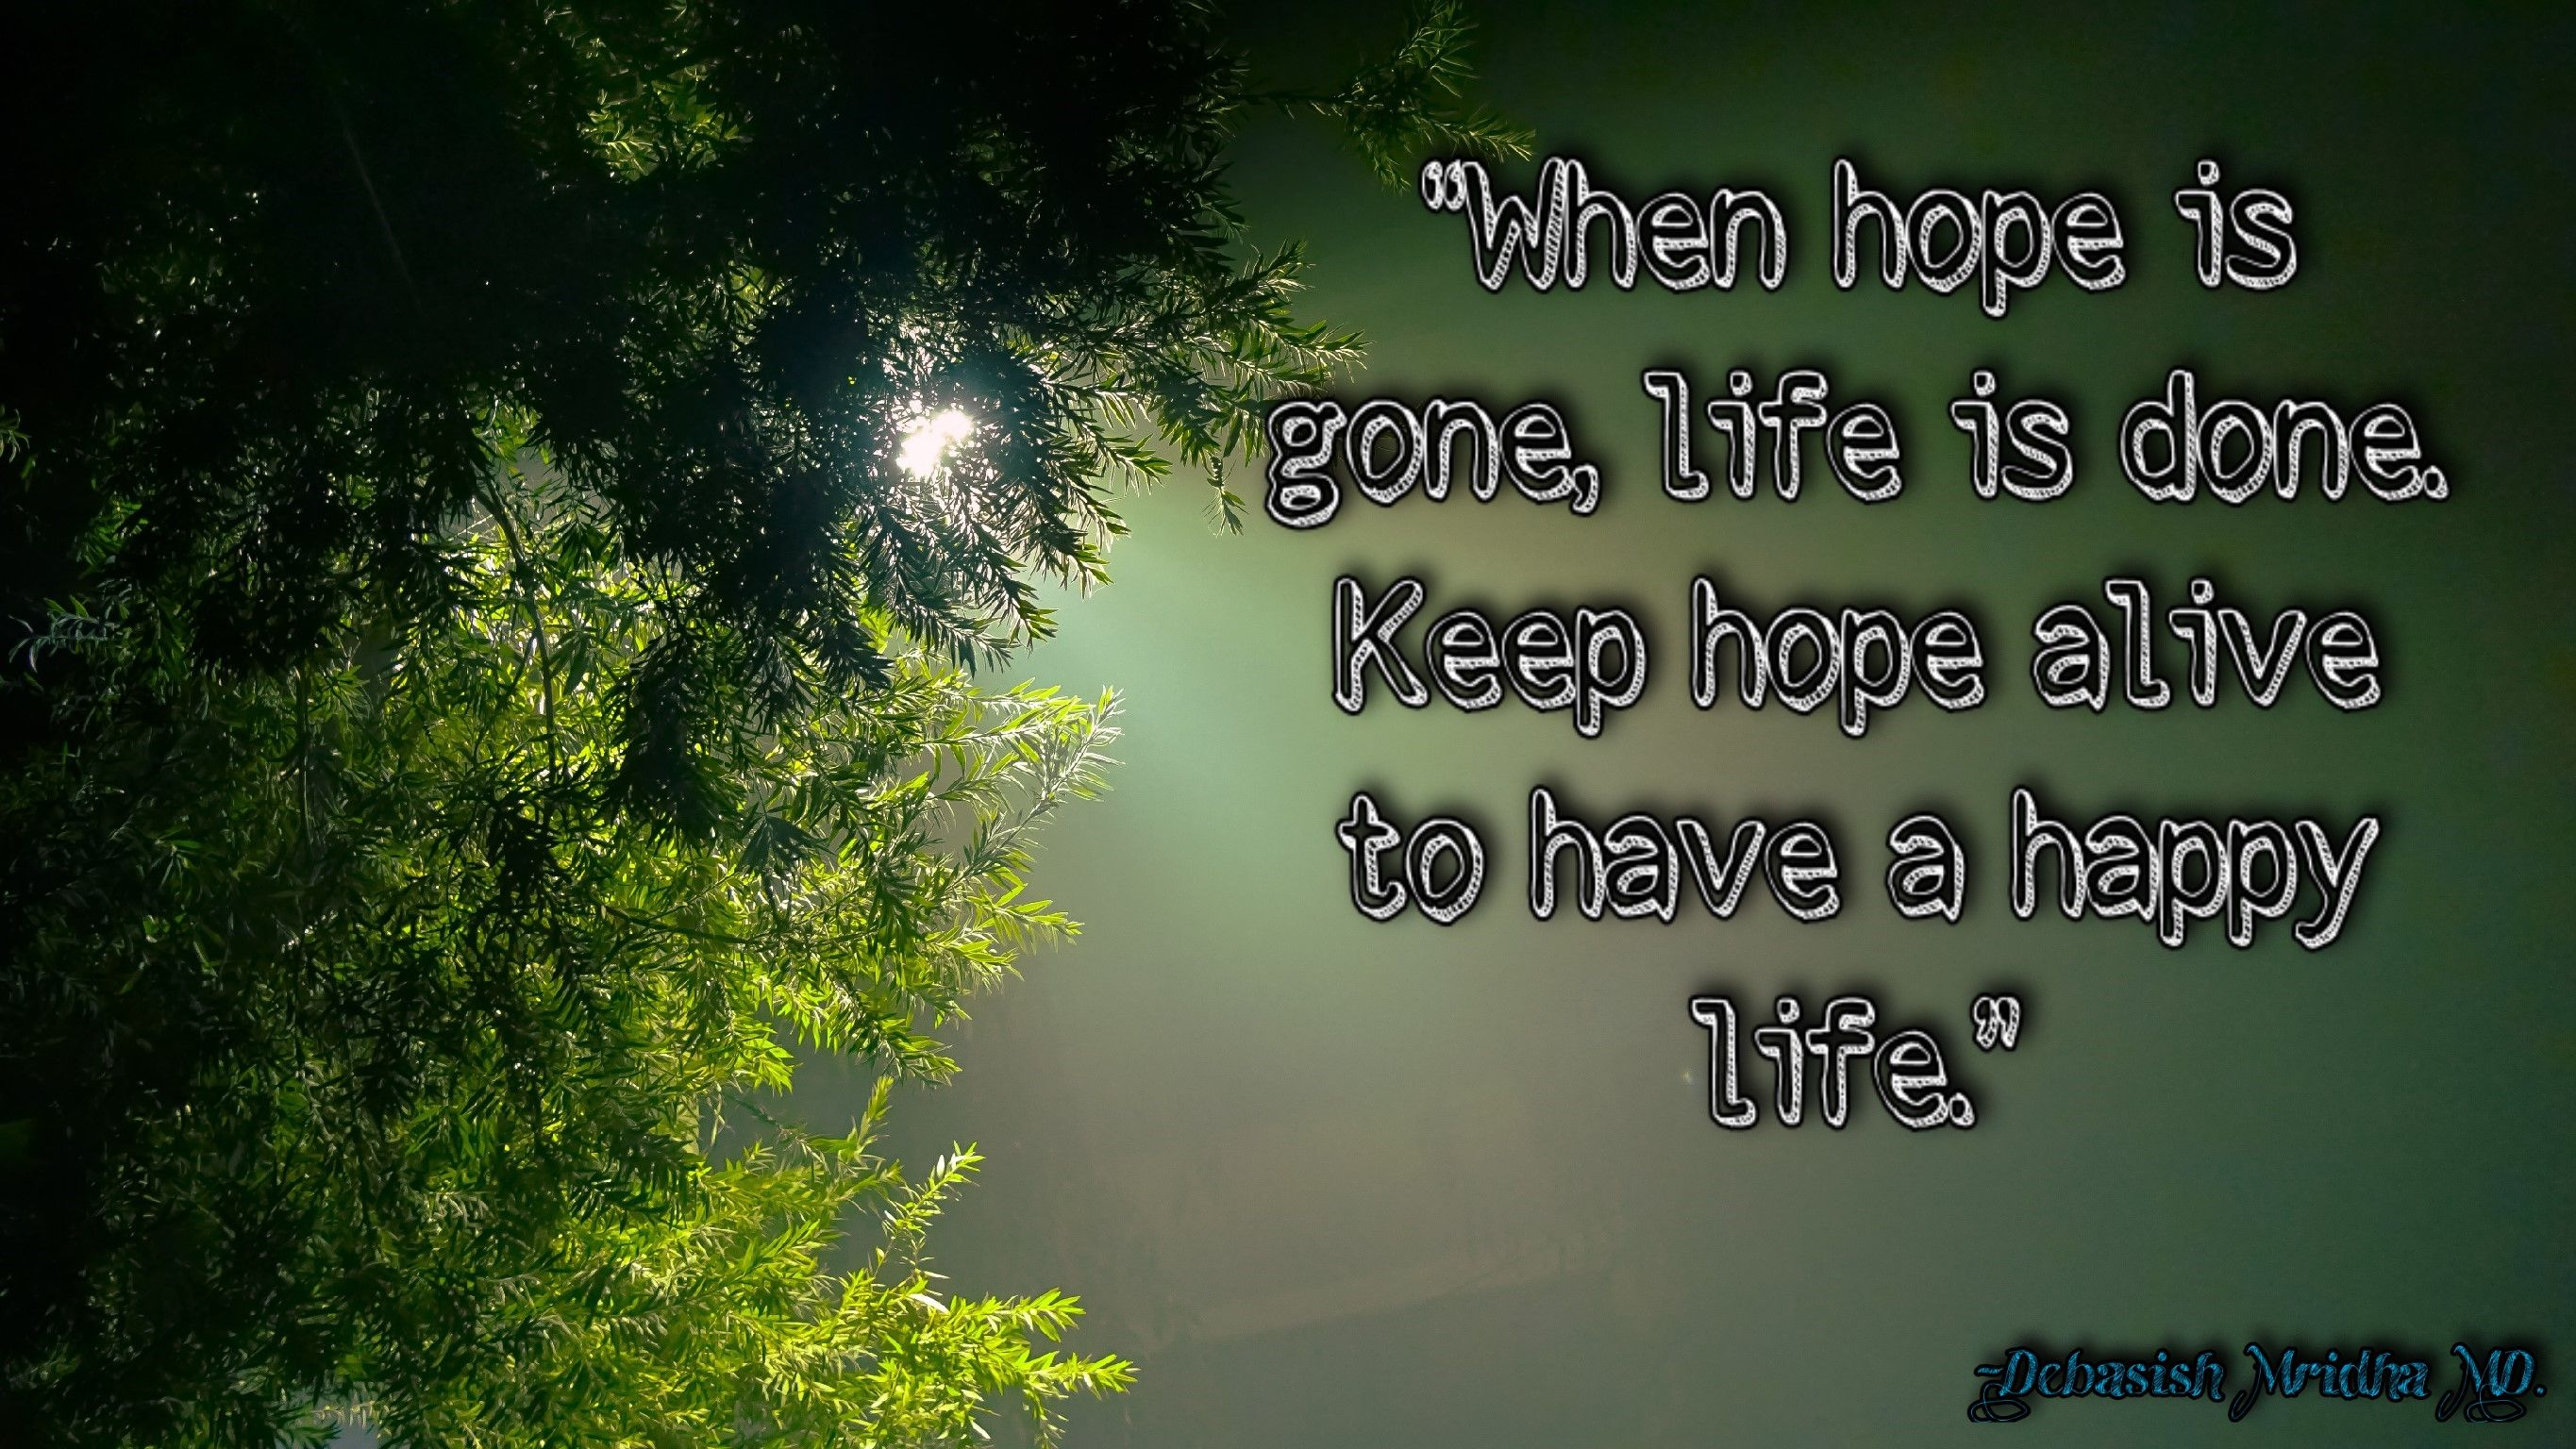 debasishmridha keep hope alive to have a happy life debasishmridhaquotes philosophy quotes life hope done happy alive gone